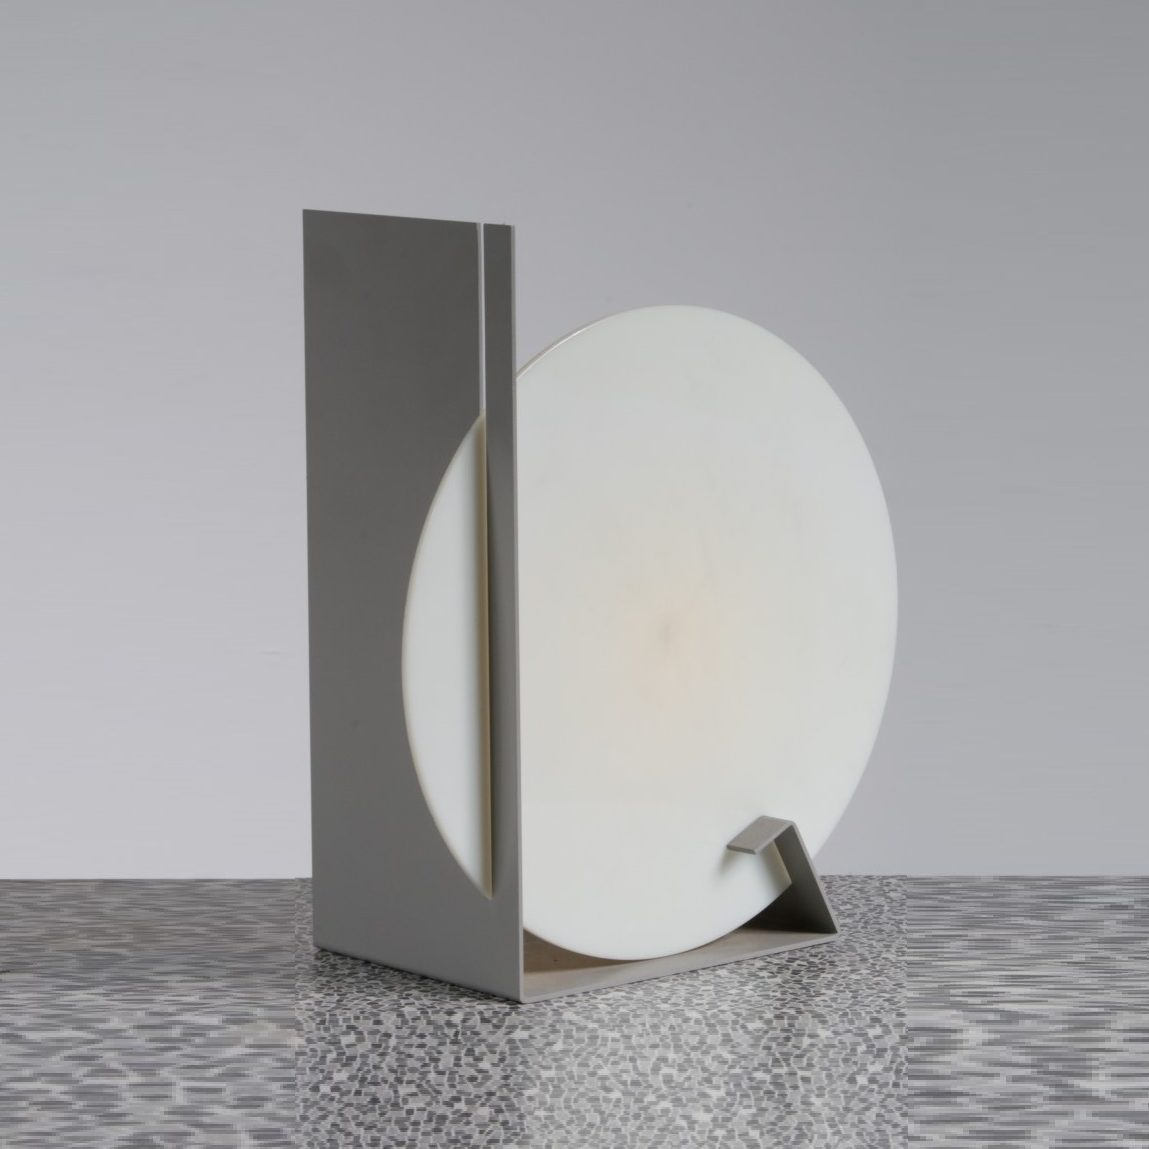 Design Lampen 1960s Dijkstra Lampen Desk Lamp White Perspex With Grey Metal